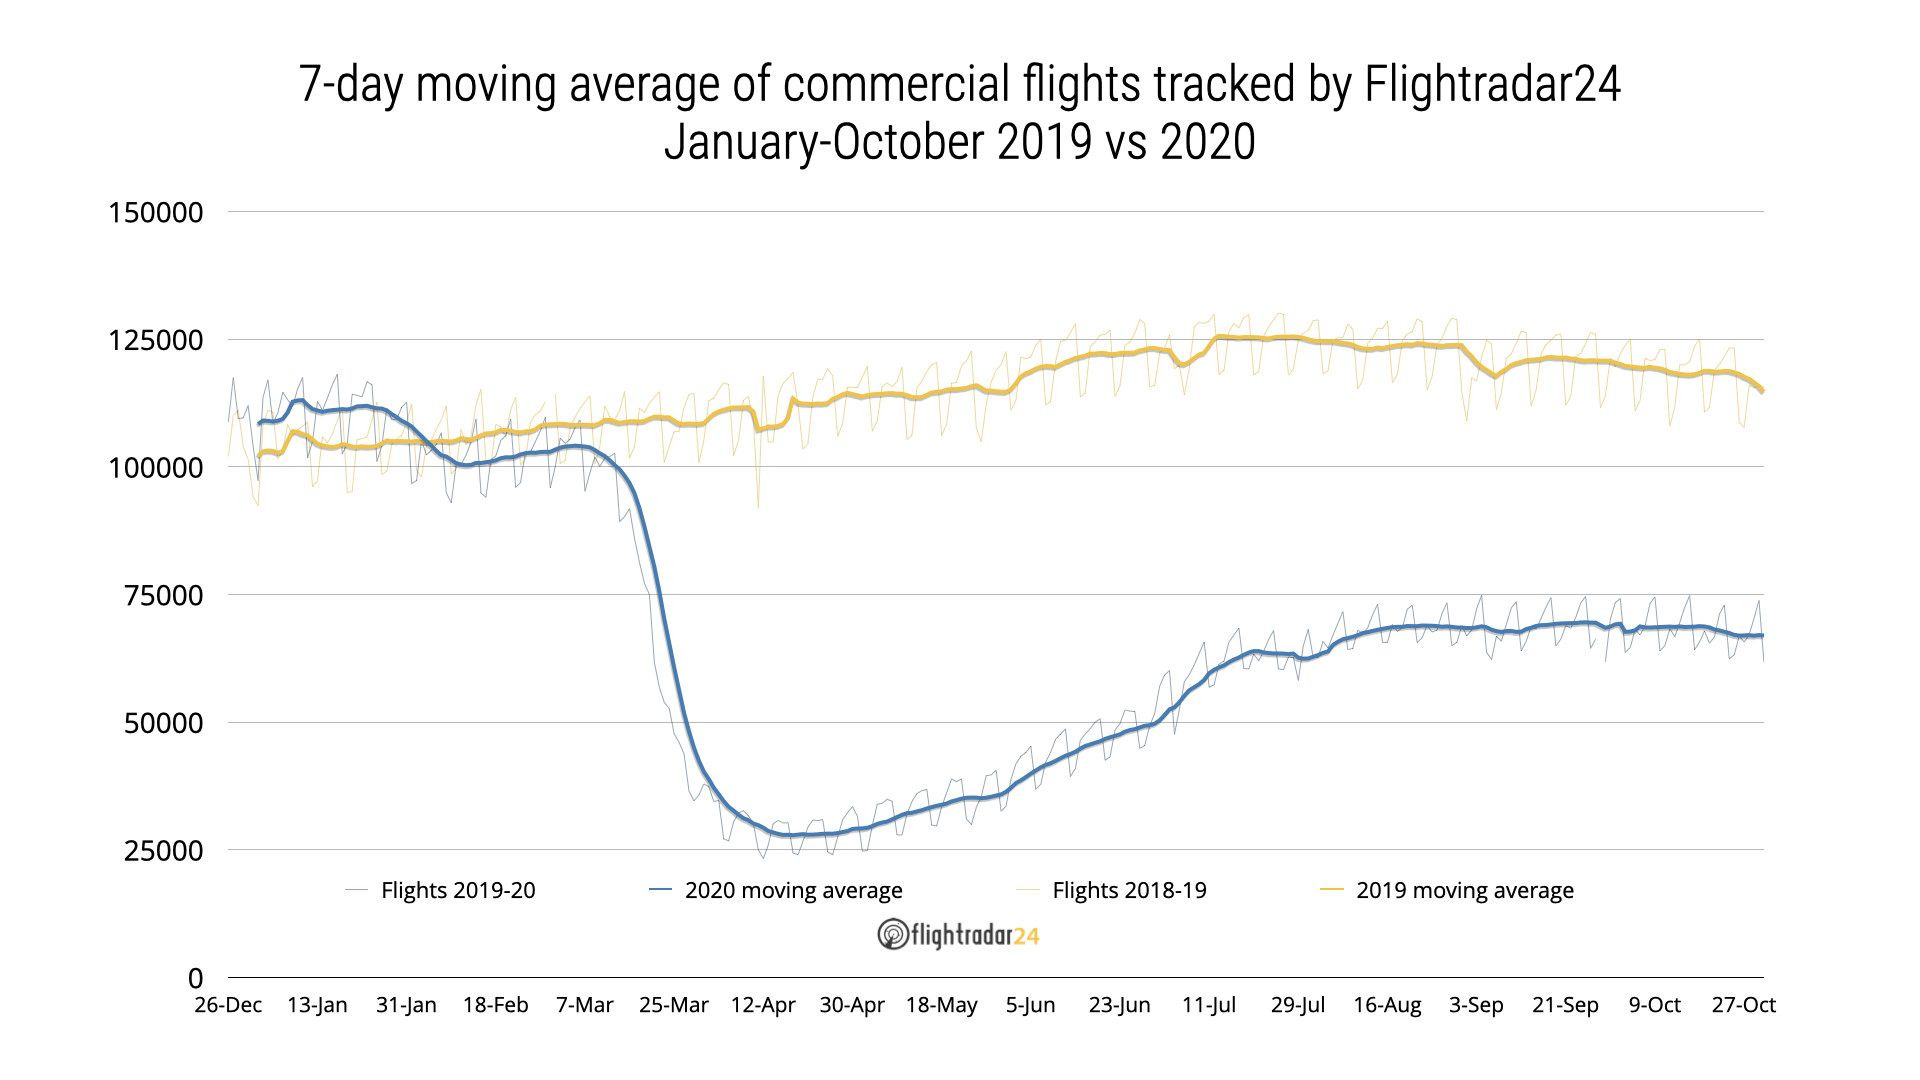 Commerical-flights-to-Oct-2019-vs-2020